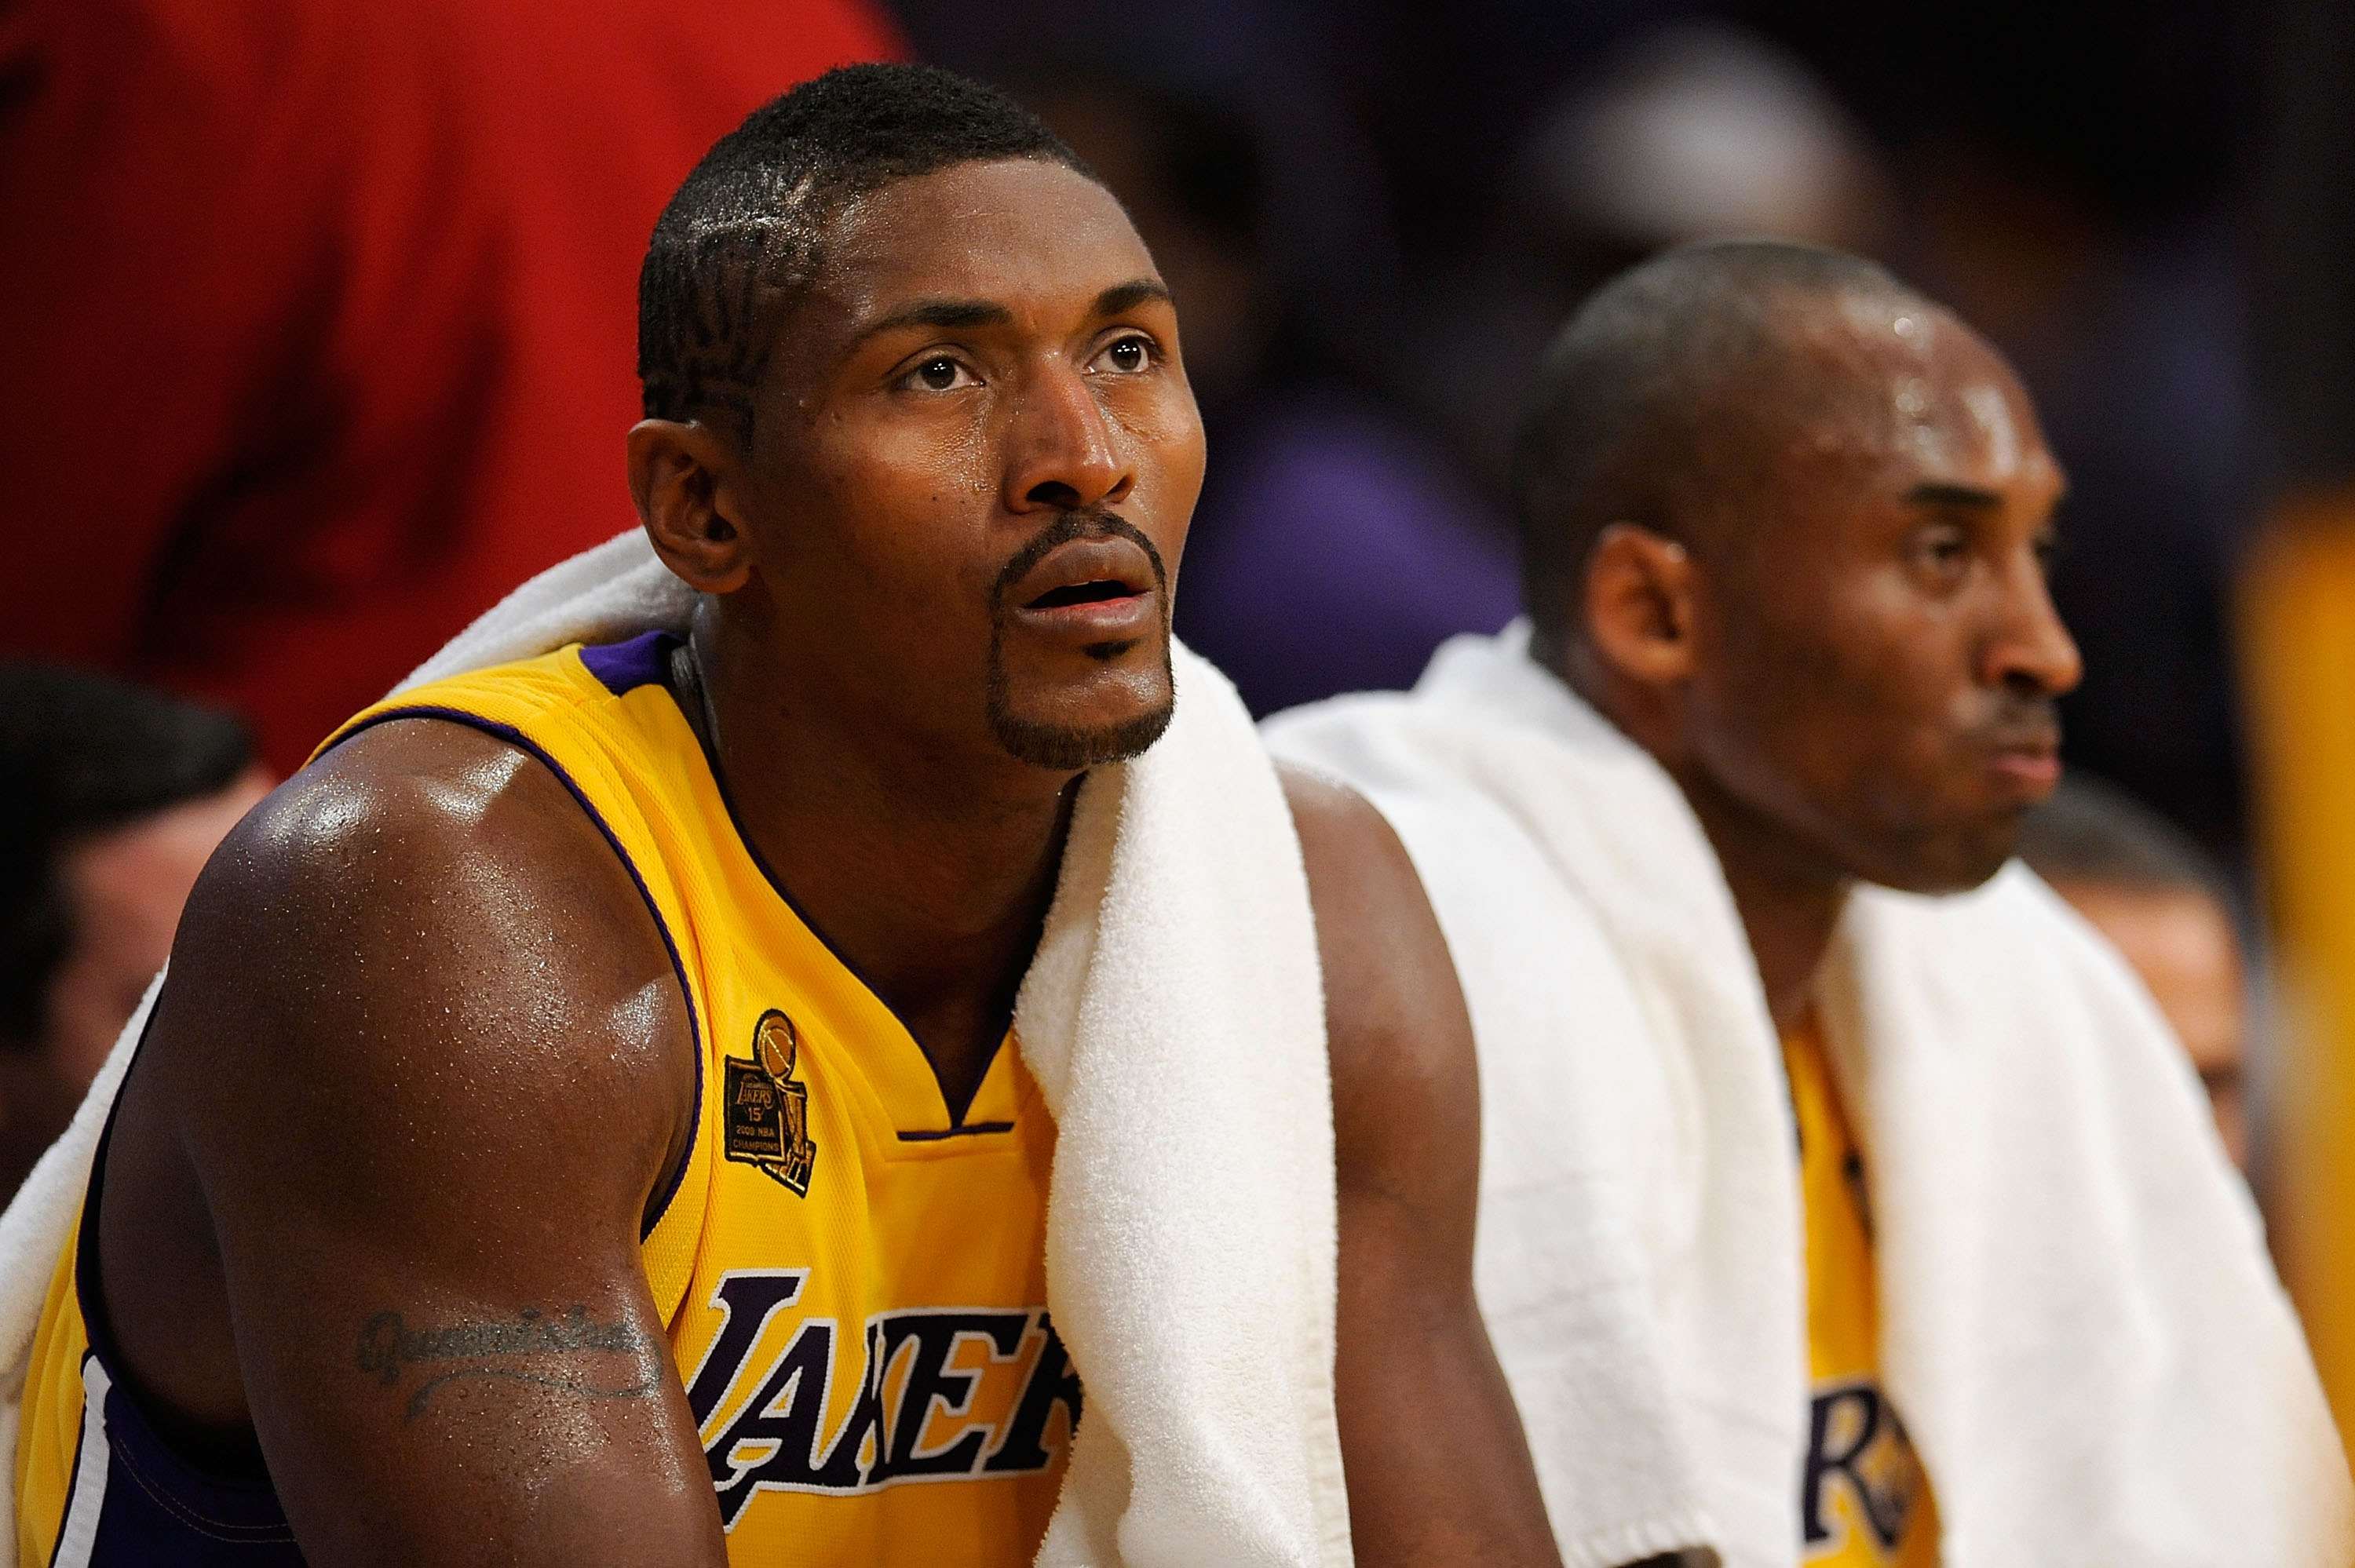 LOS ANGELES, CA - OCTOBER 27:  (L-R) Ron Artest #37 and Kobe Bryant #24 of the Los Angeles Lakers sit on the bench during the season opening game against the Los Angeles Clippers at Staples Center on October 27, 2009 in Los Angeles, California.  The Laker